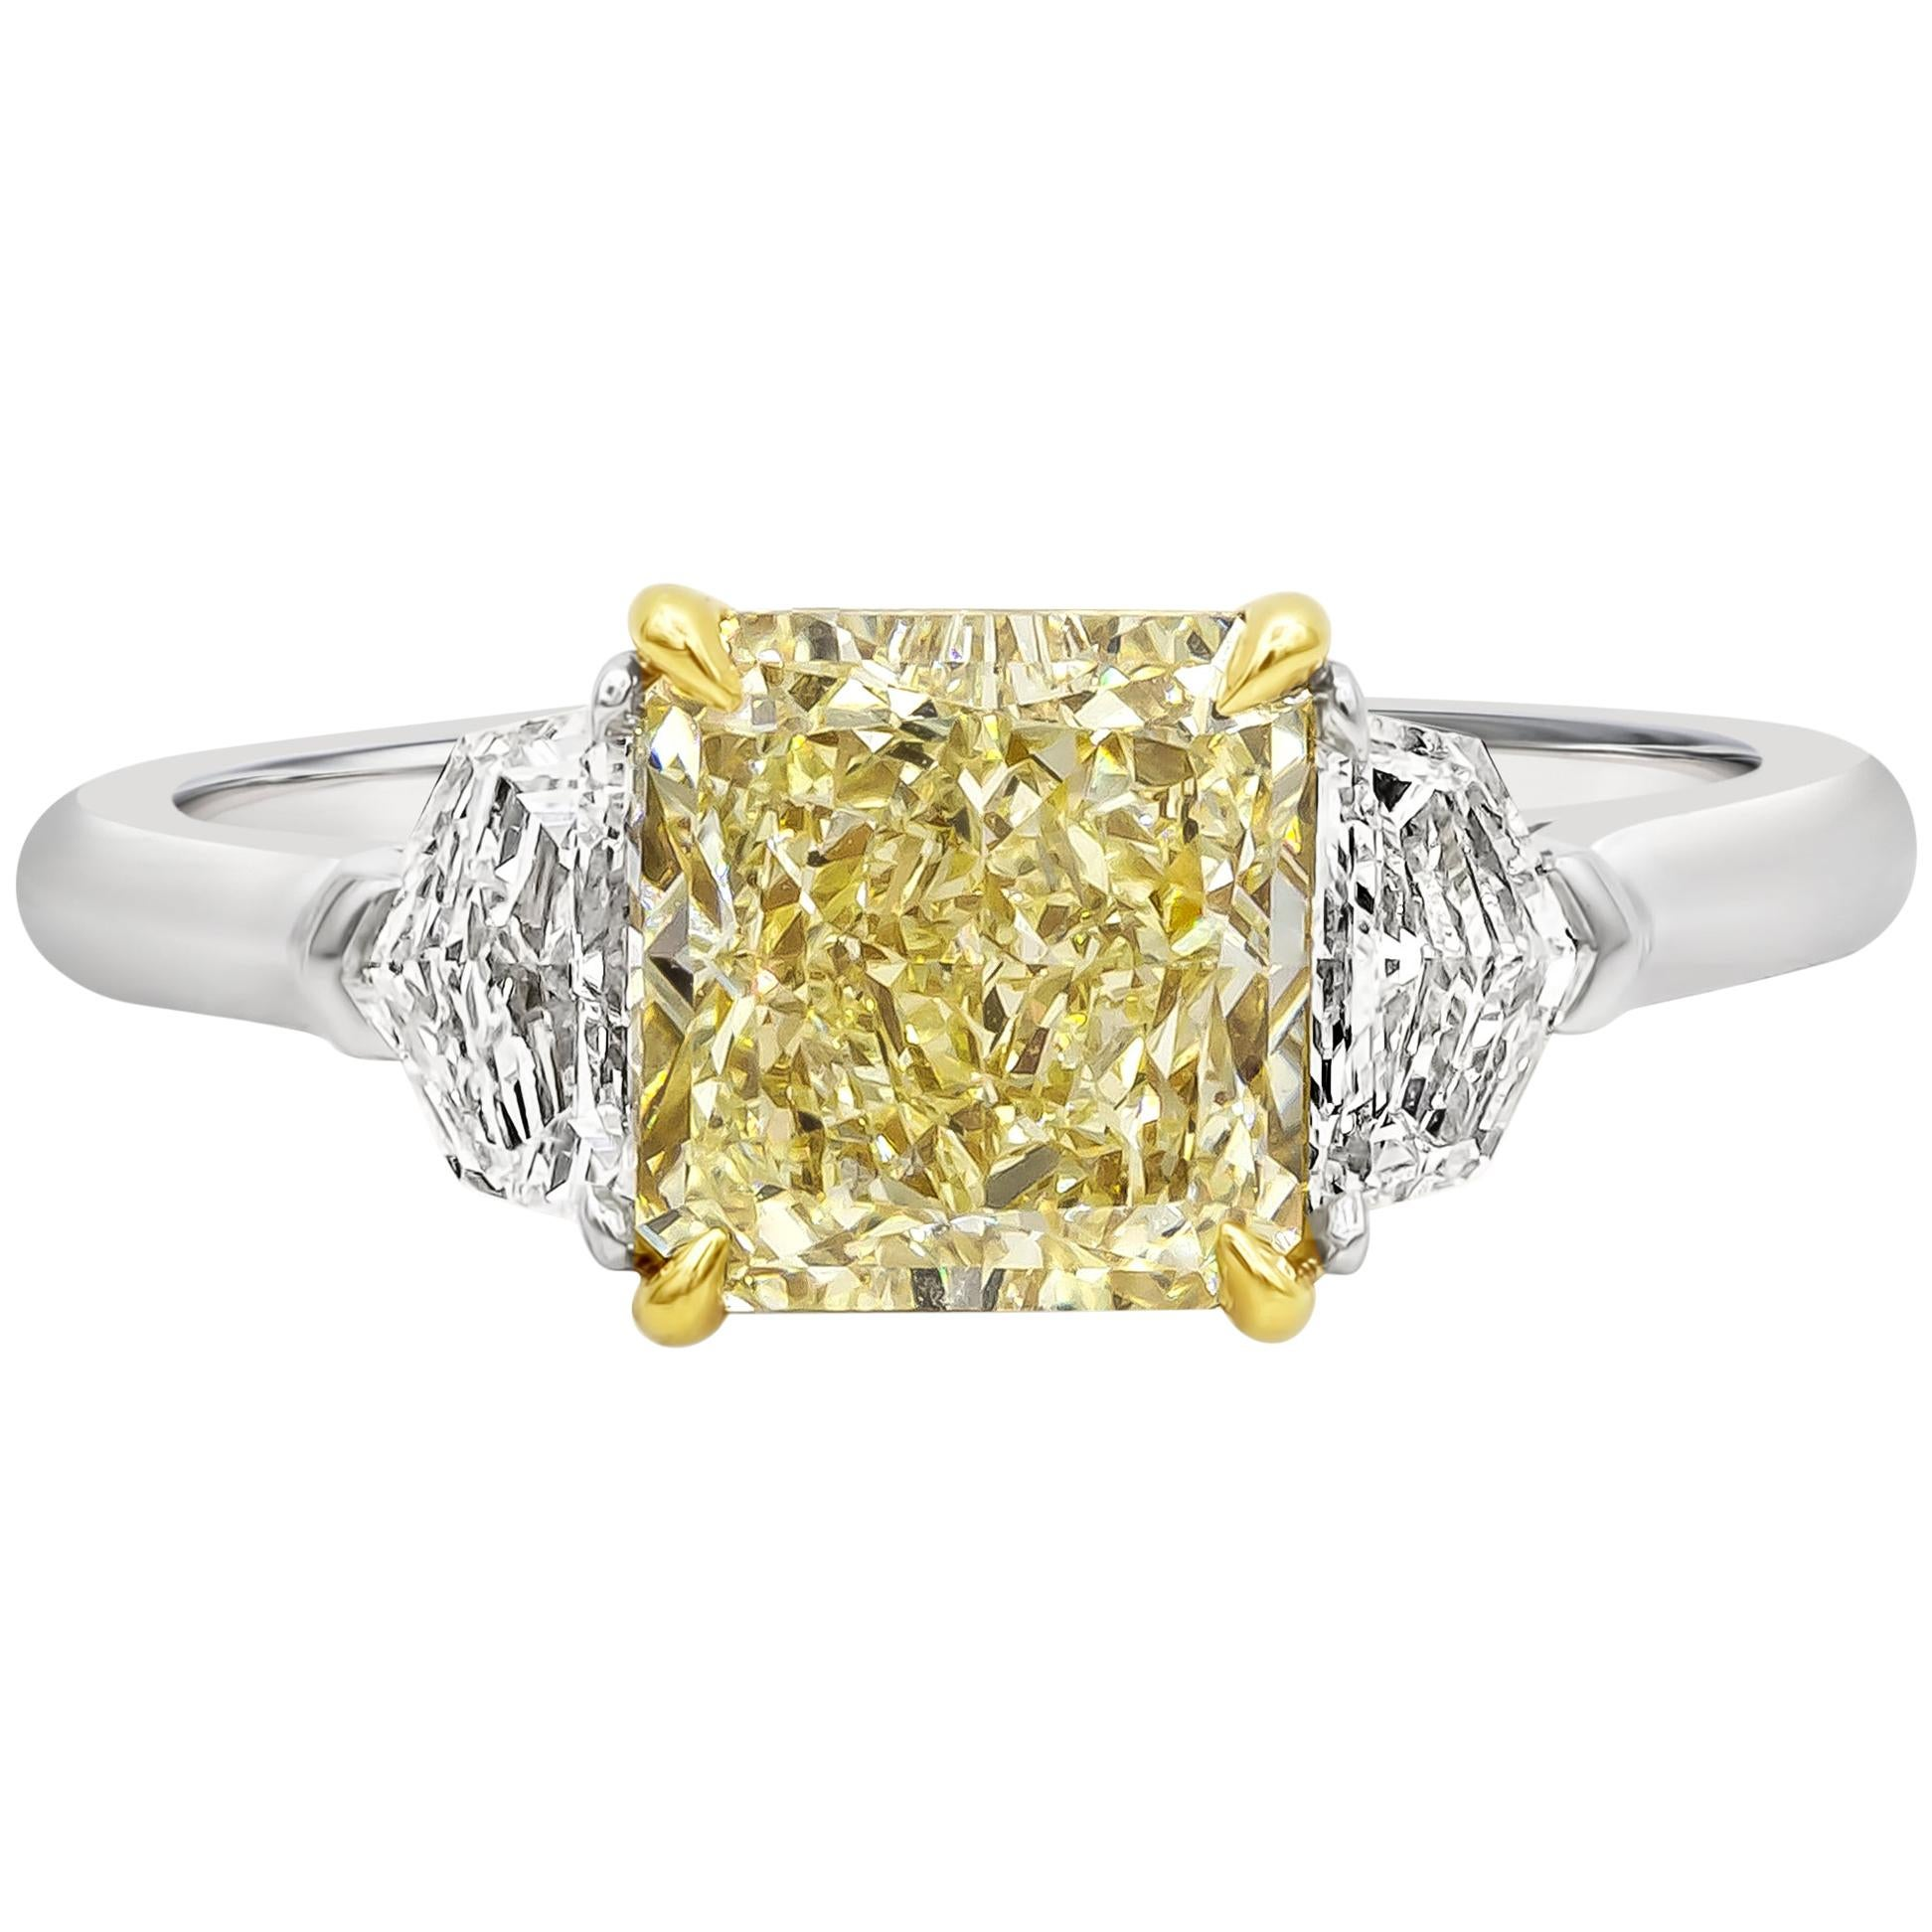 GIA Certified 2.01 Carat Yellow Diamond Three-Stone Engagement Ring